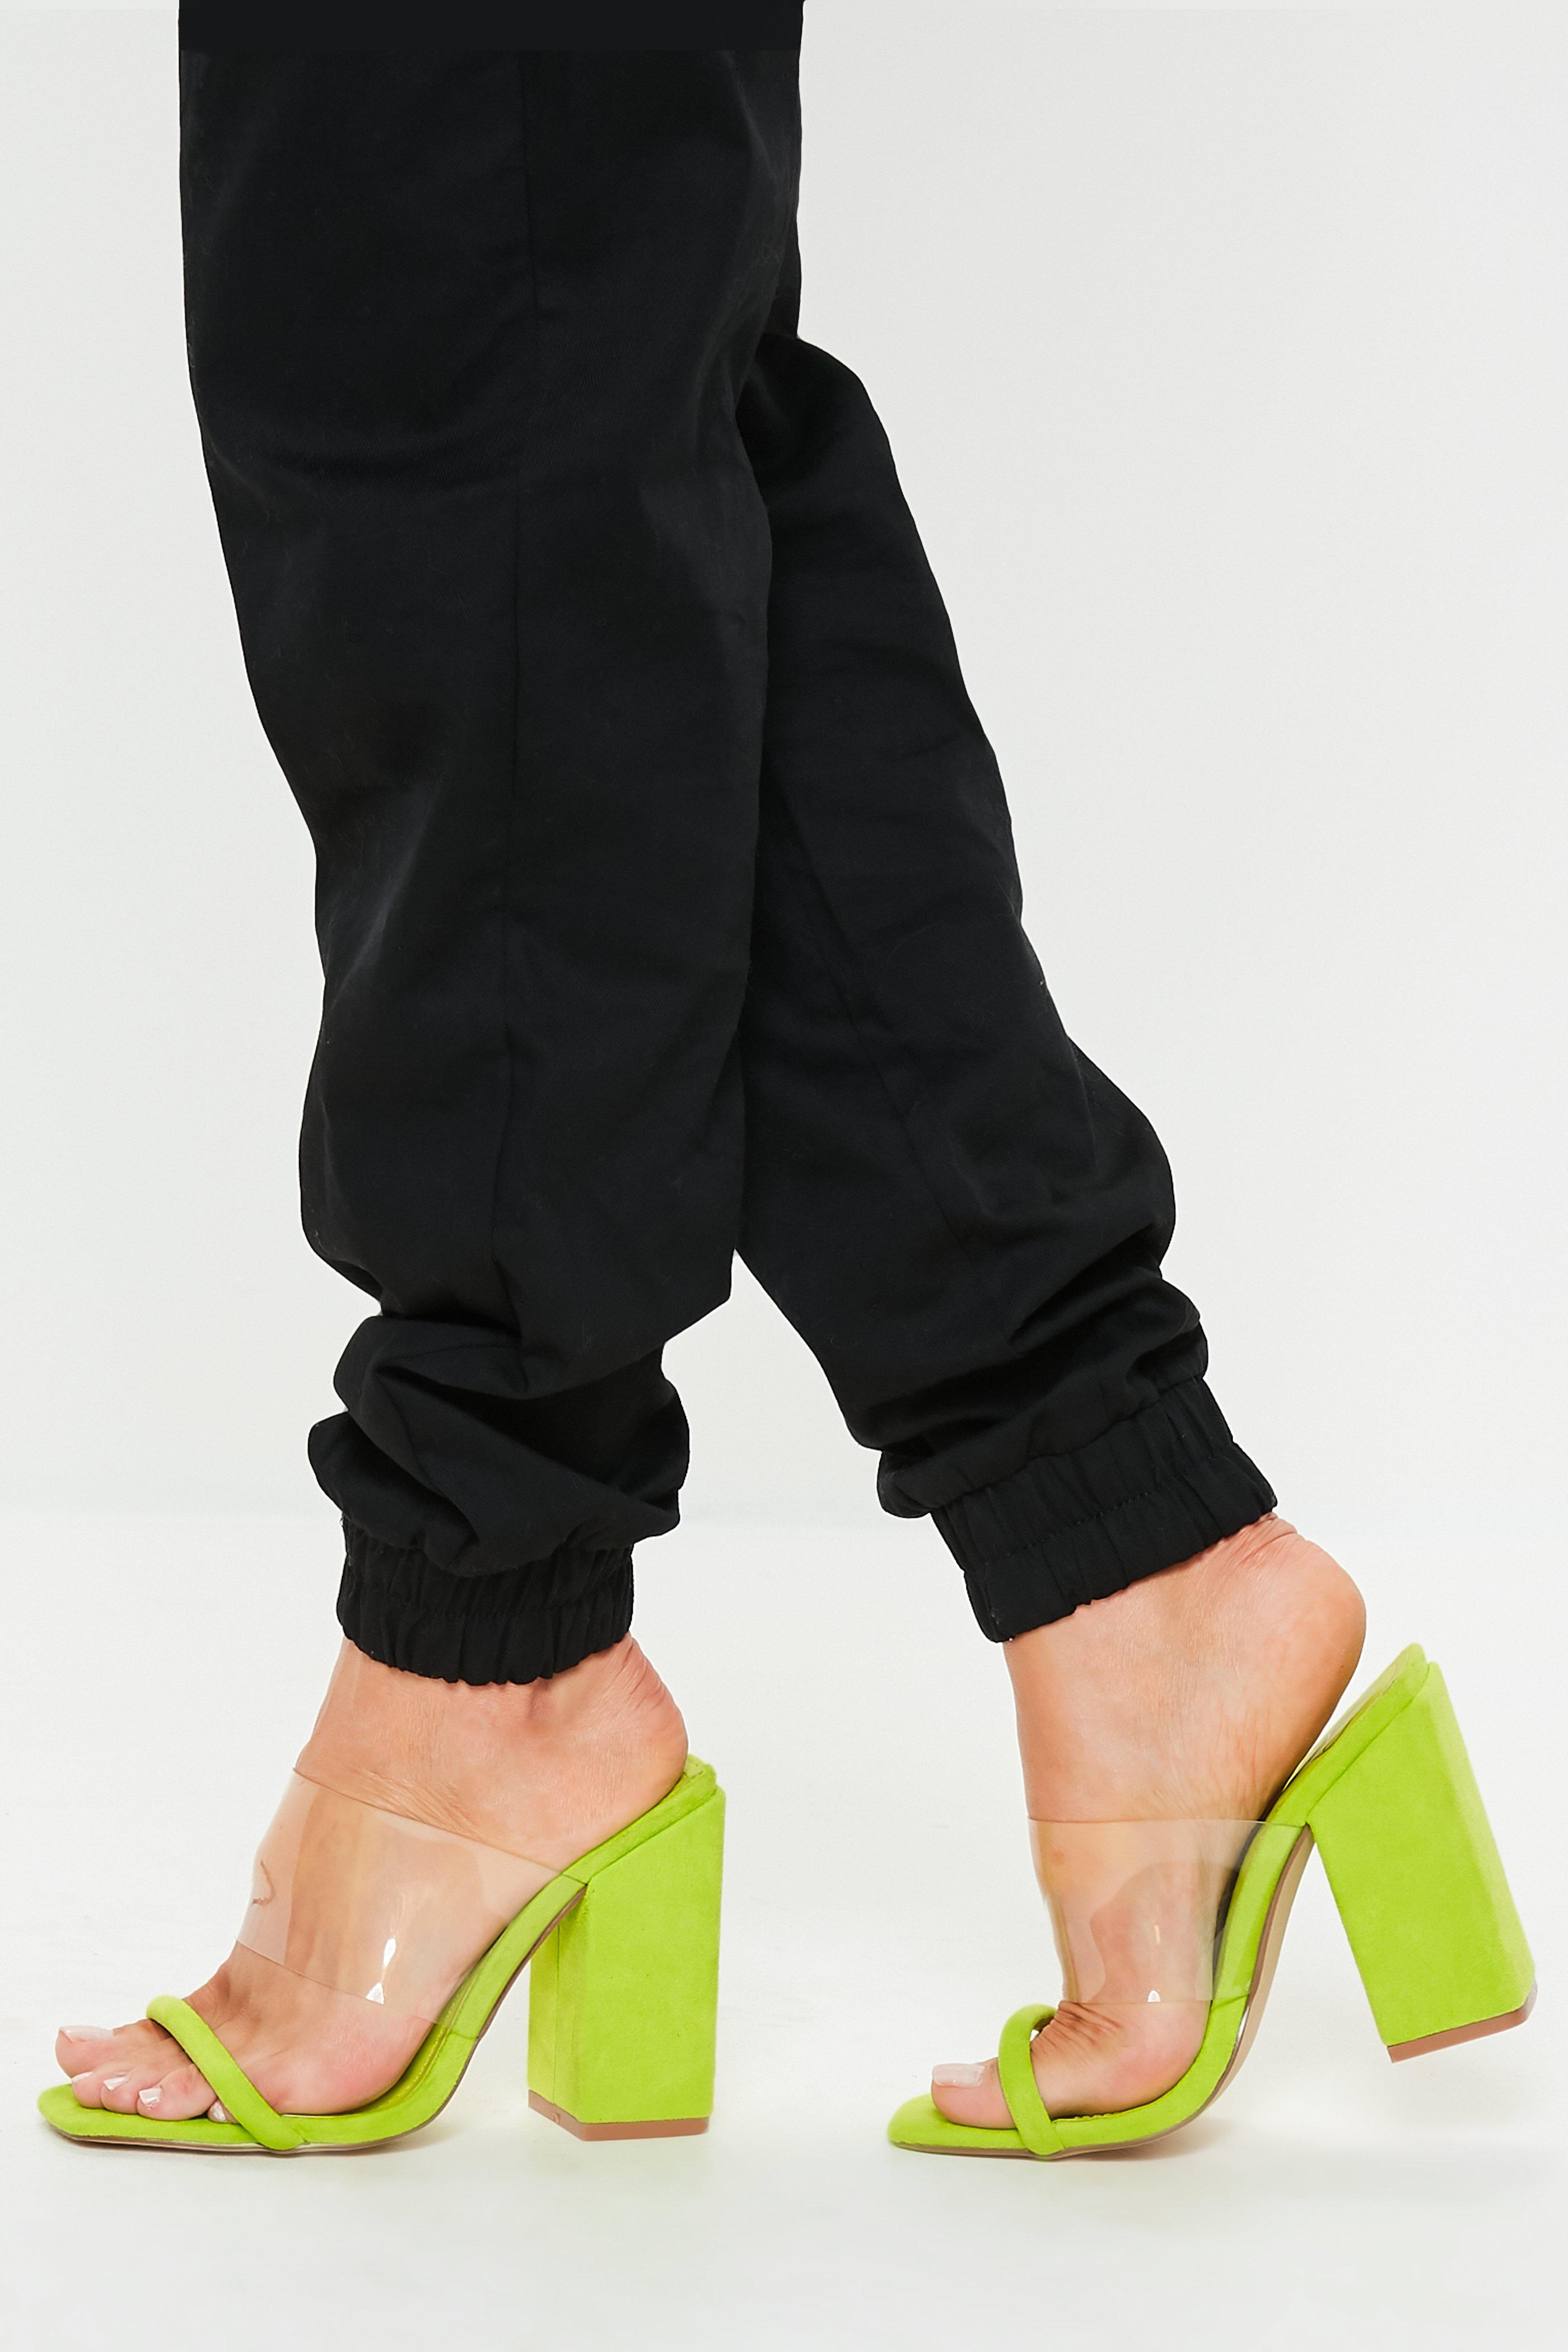 07e835bab82 Clear   Transparent Heels - Missguided Ireland